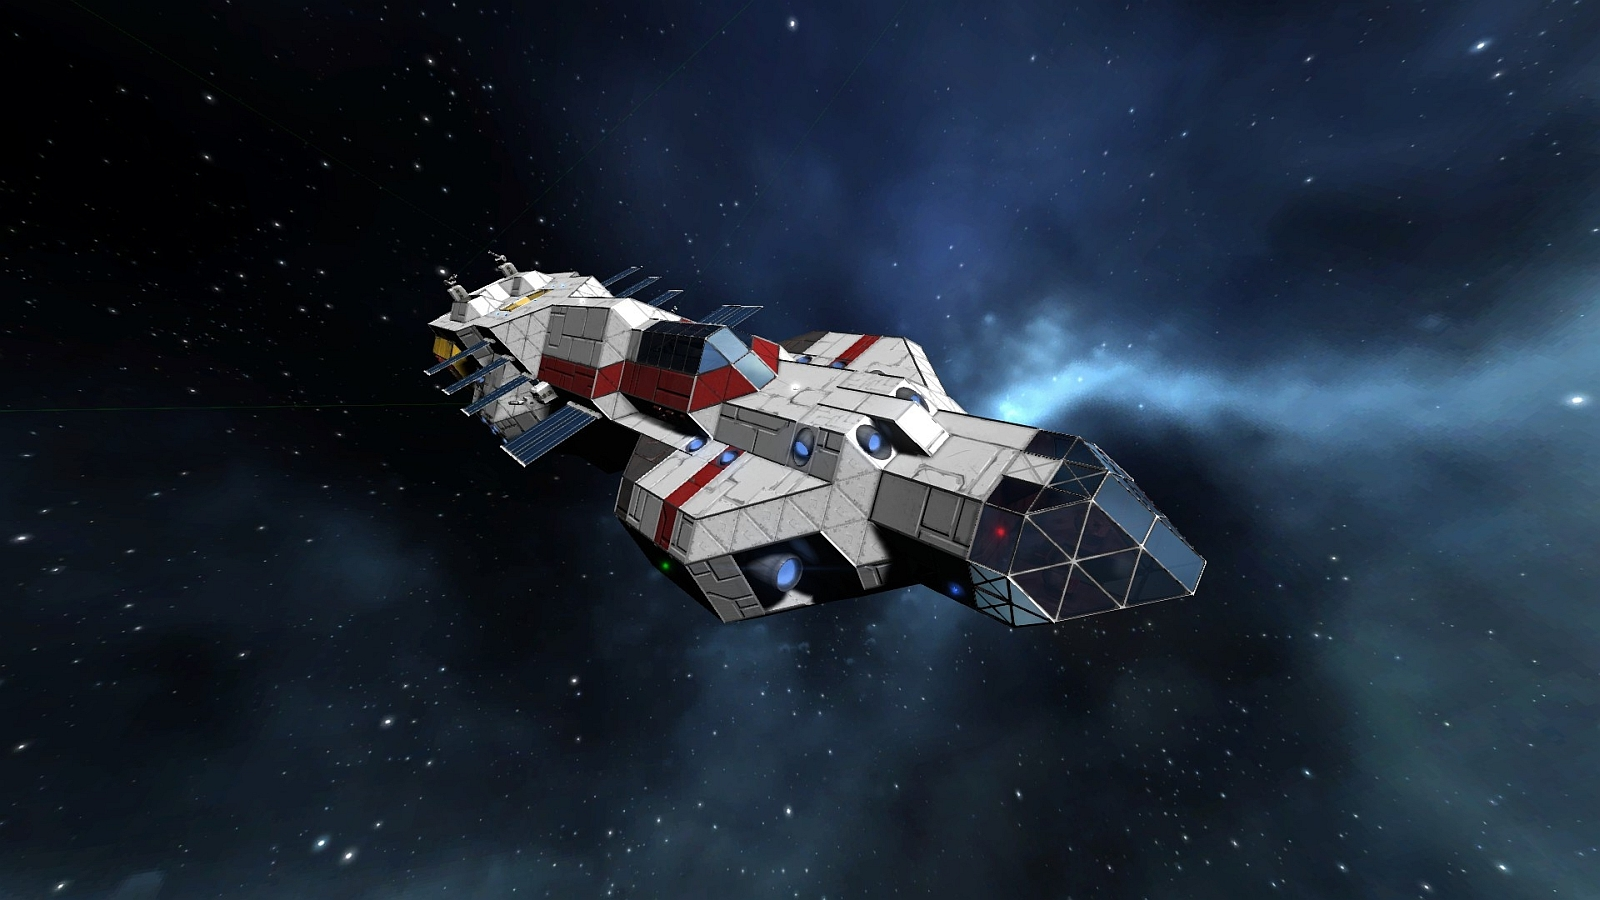 Steam community guide practical shipbuilding for practical people - Small reactor space engineers gallery ...